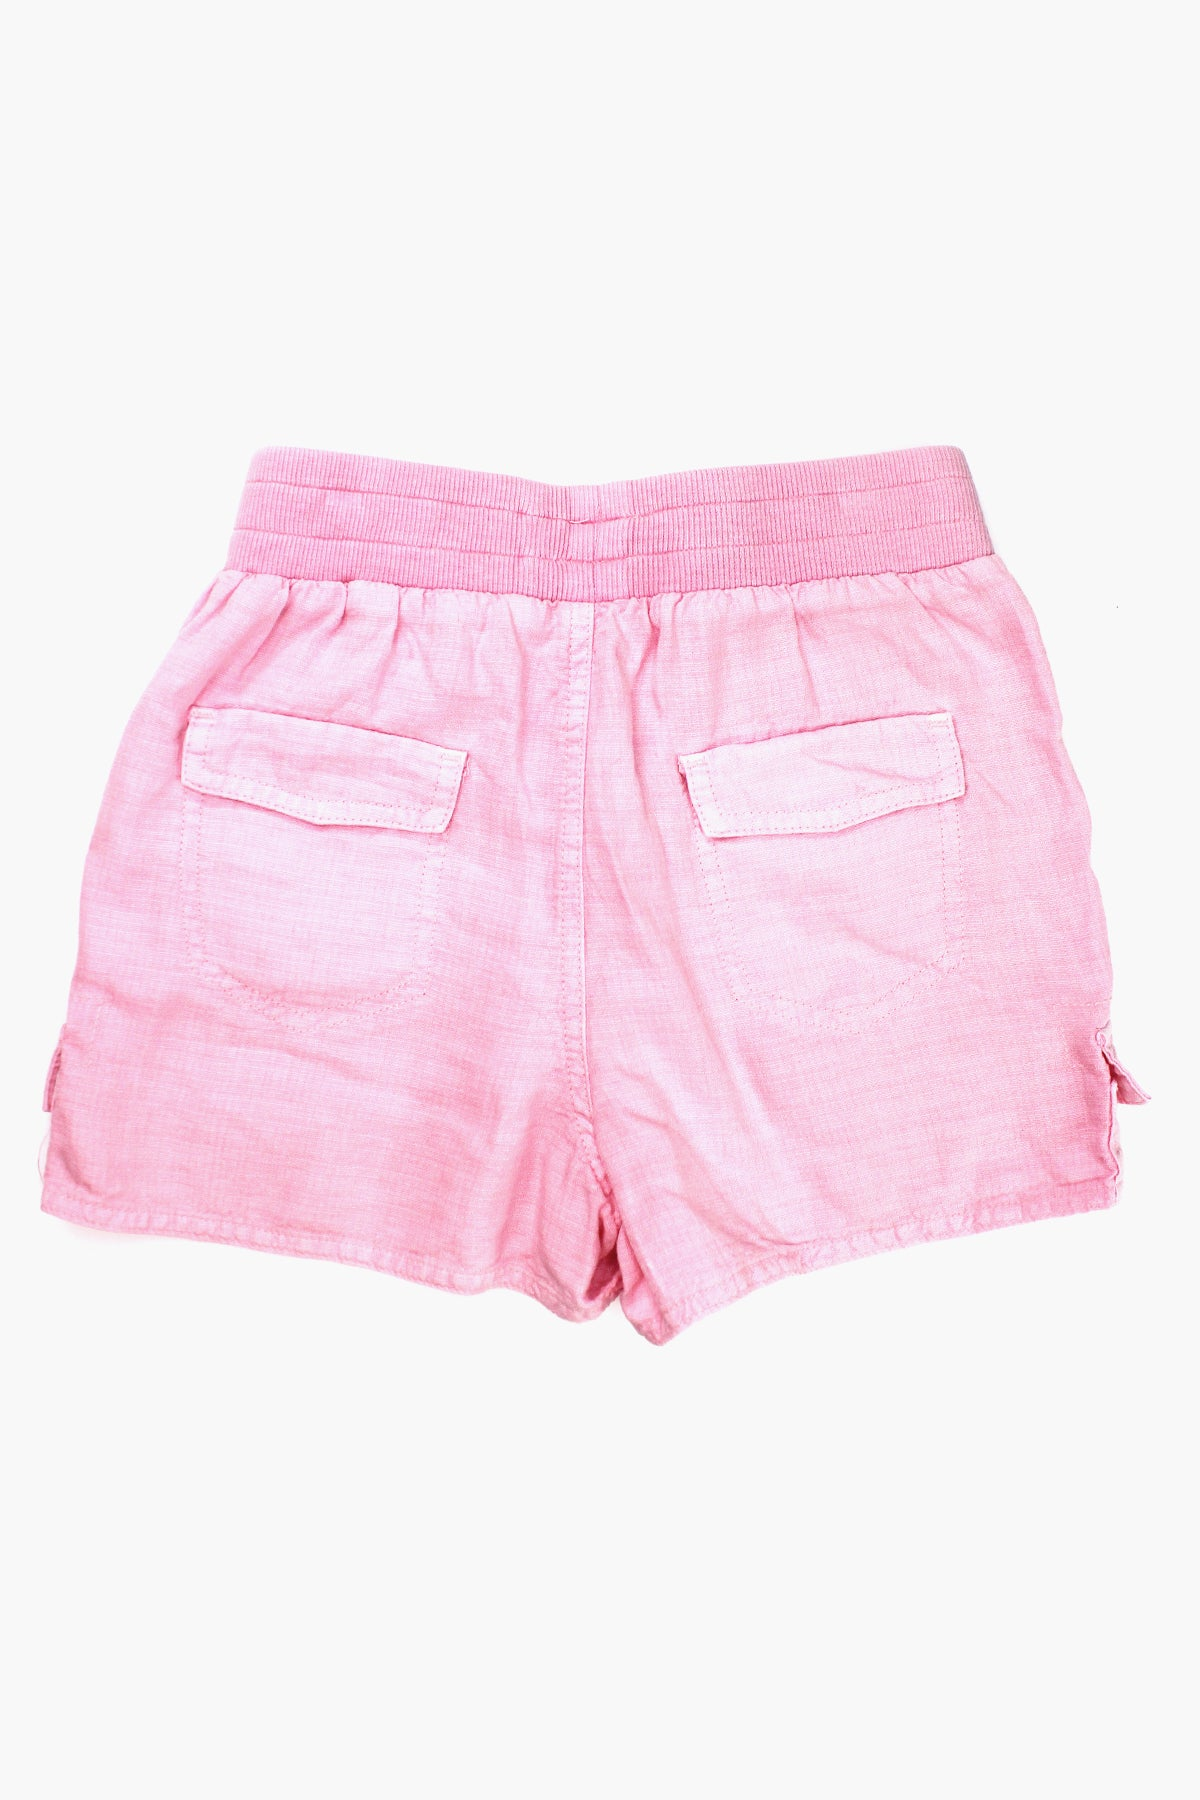 Splendid Woven Girls Shorts